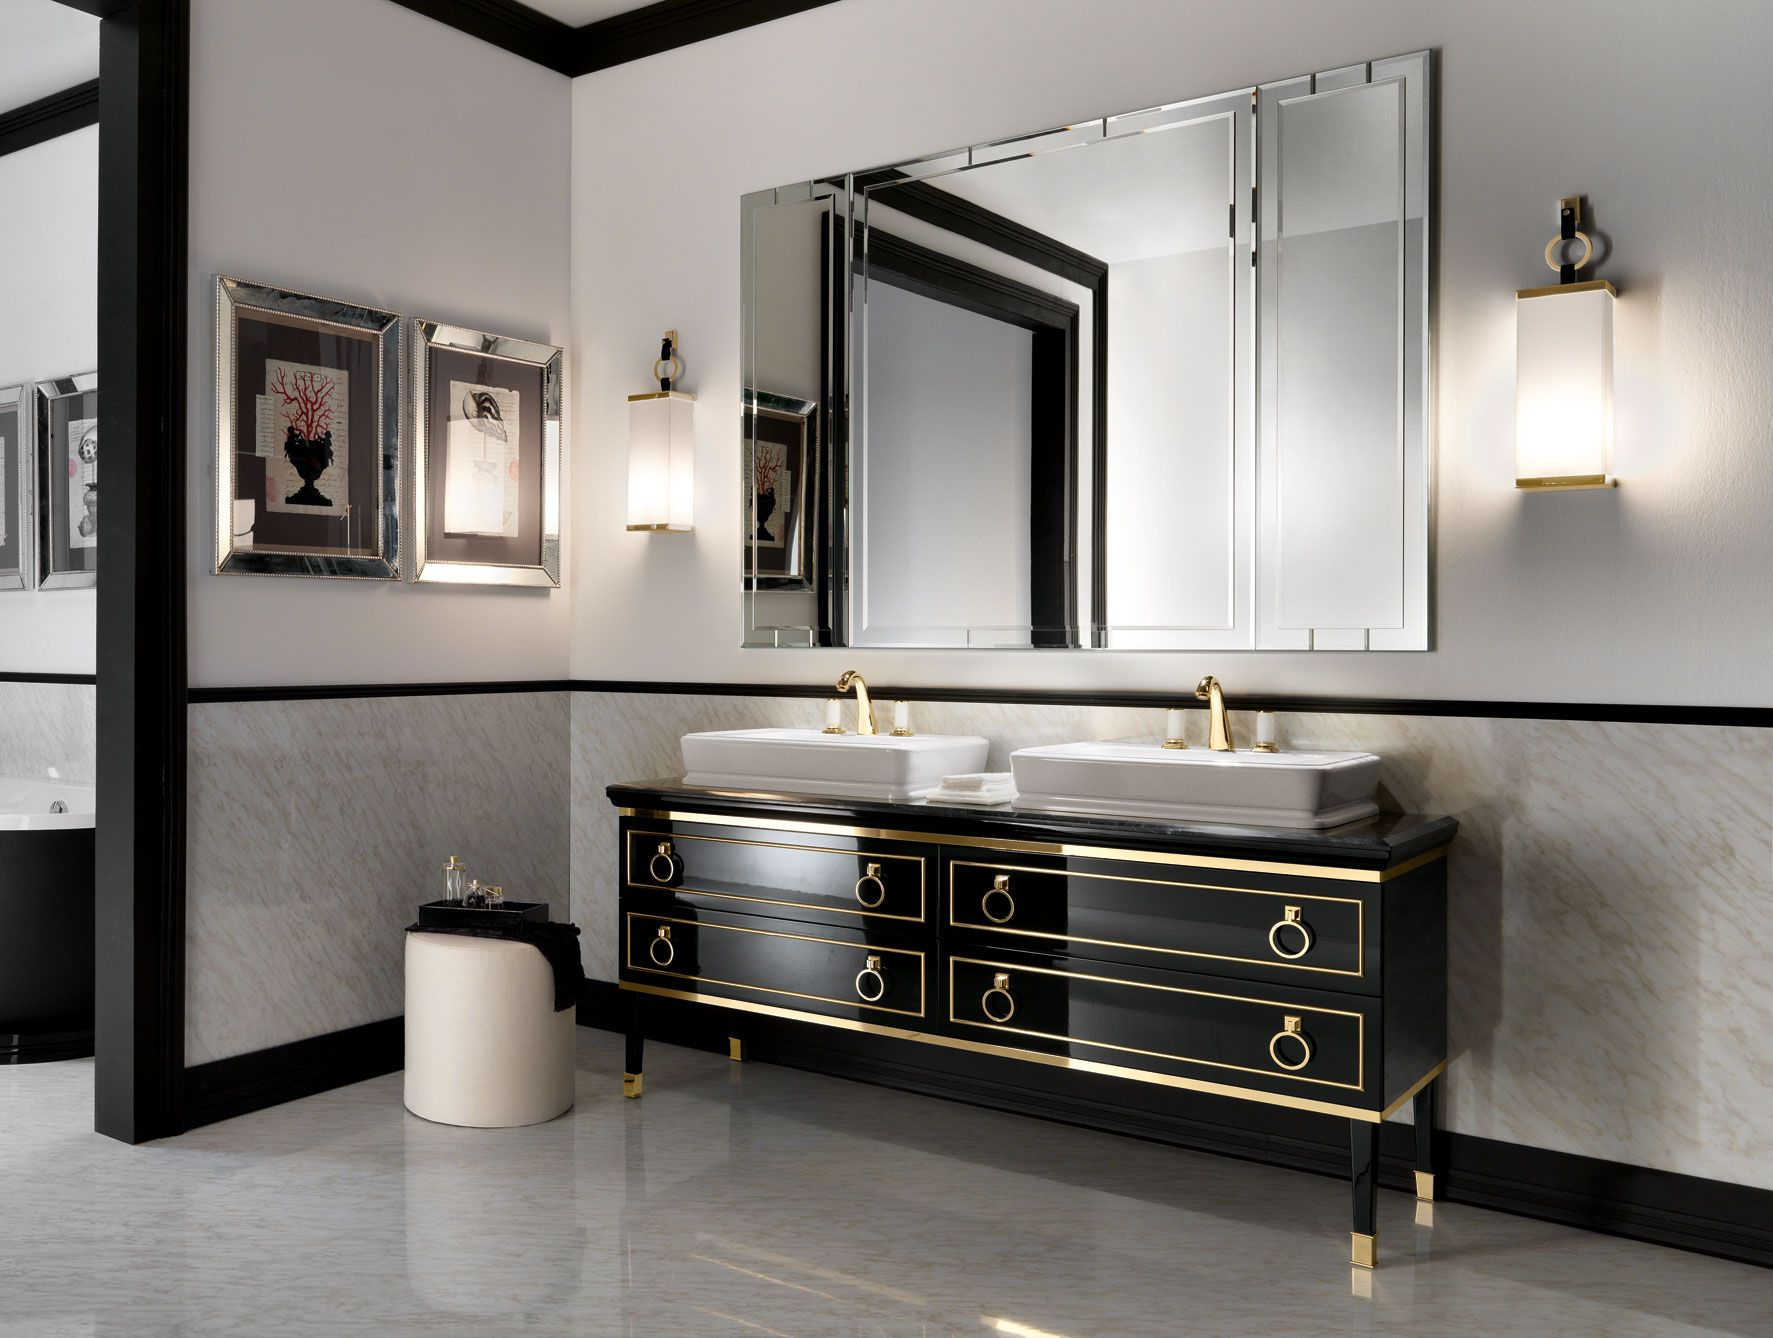 High End Bathroom Vanities 12 Ideas For Designing An Art Deco Bathroom Art Deco Bathroom